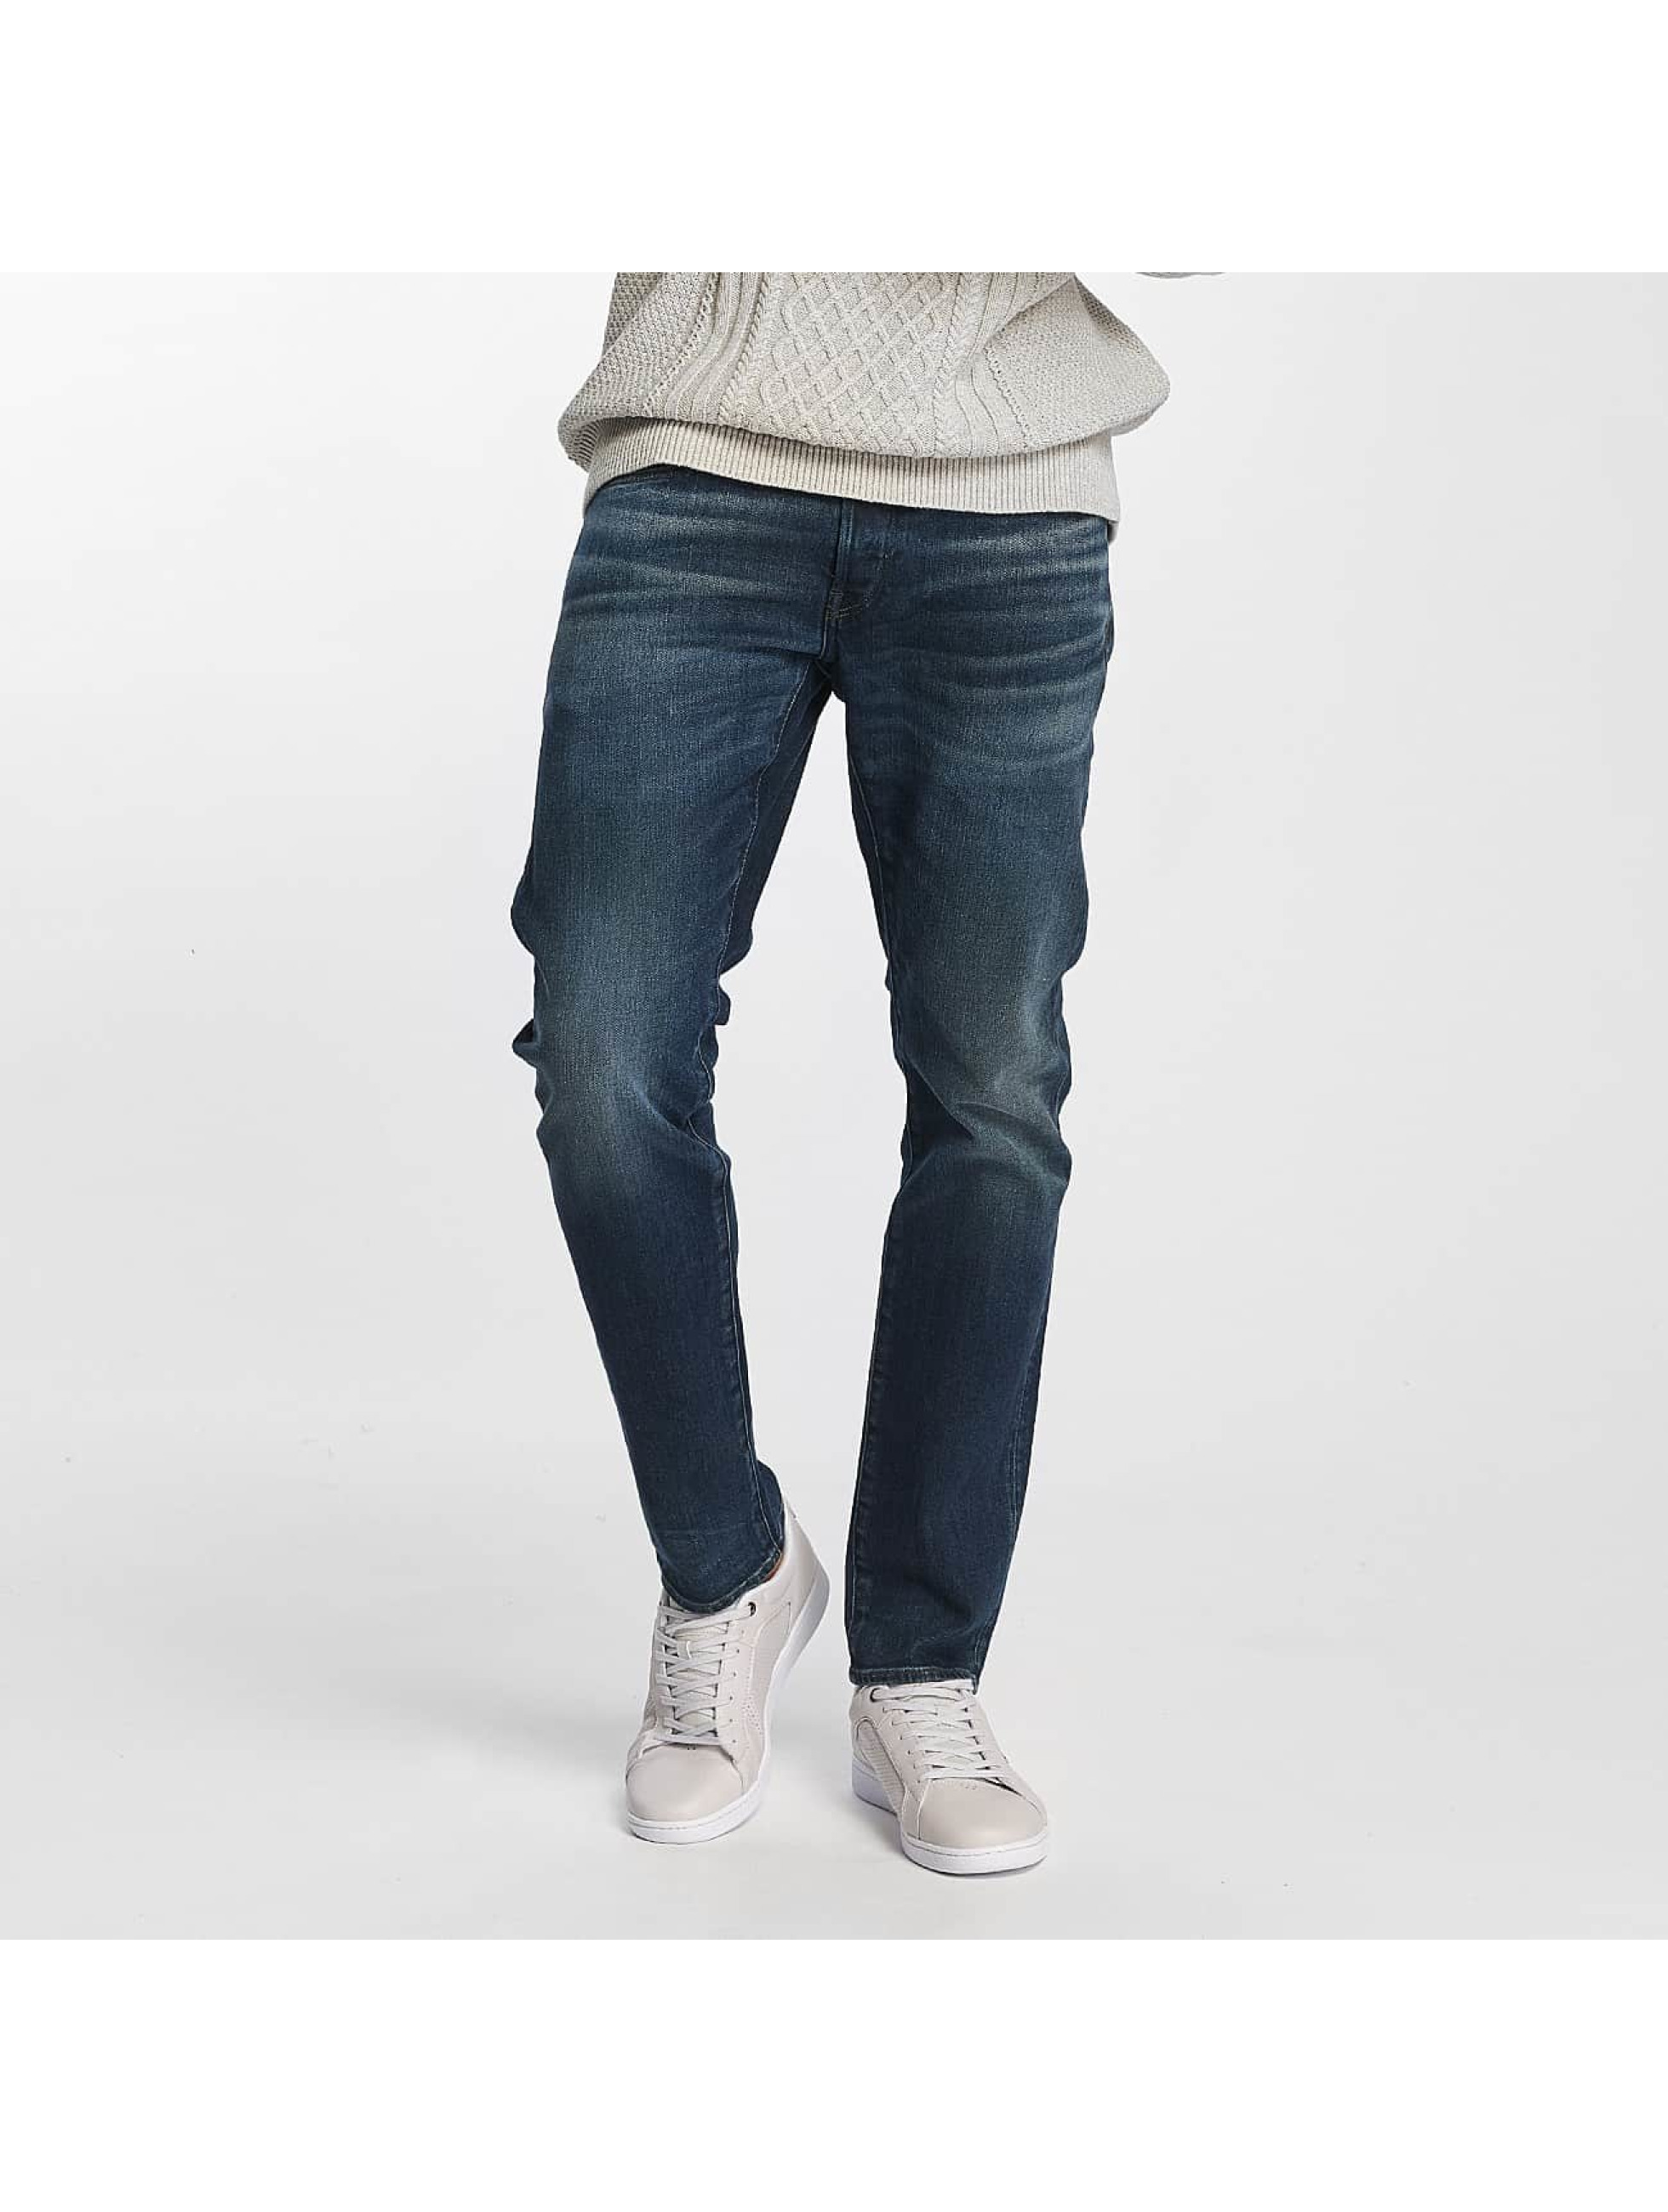 G-Star Männer Slim Fit Jeans 3301 Dava Strech Deconstructed in blau